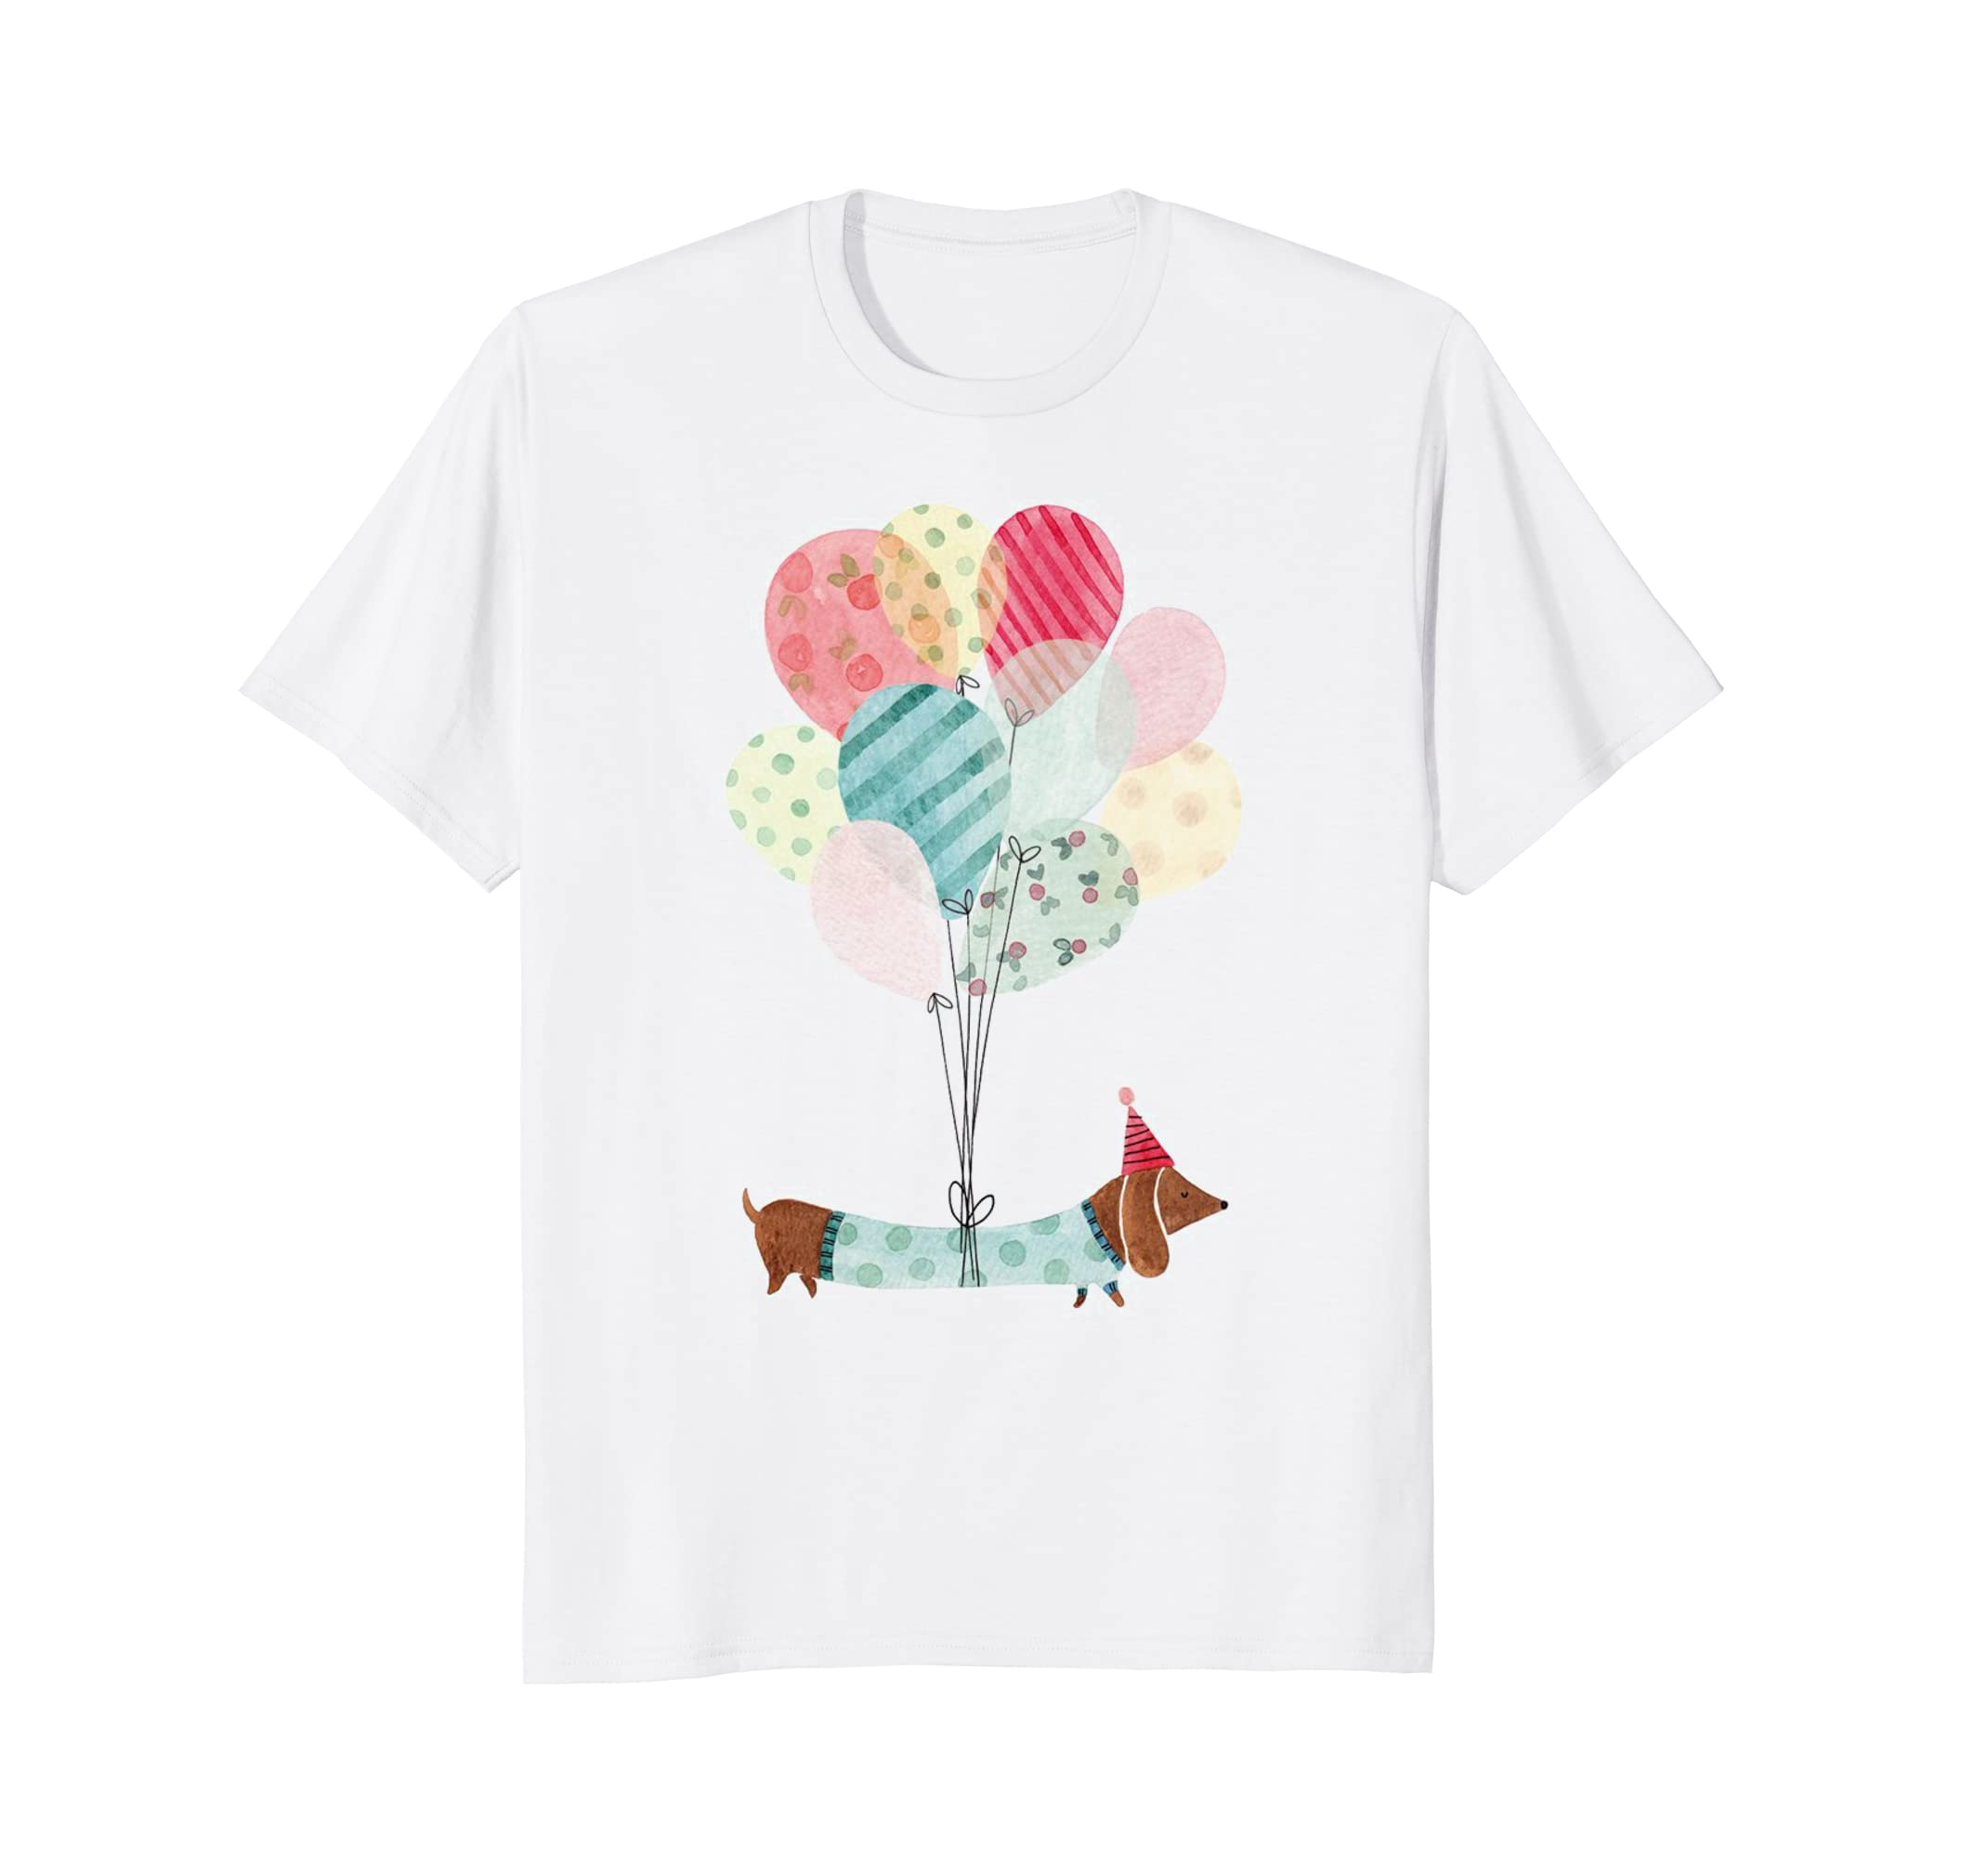 Beautiful Dachshund Dog with Colorful Balloons T-Shirt-AZP